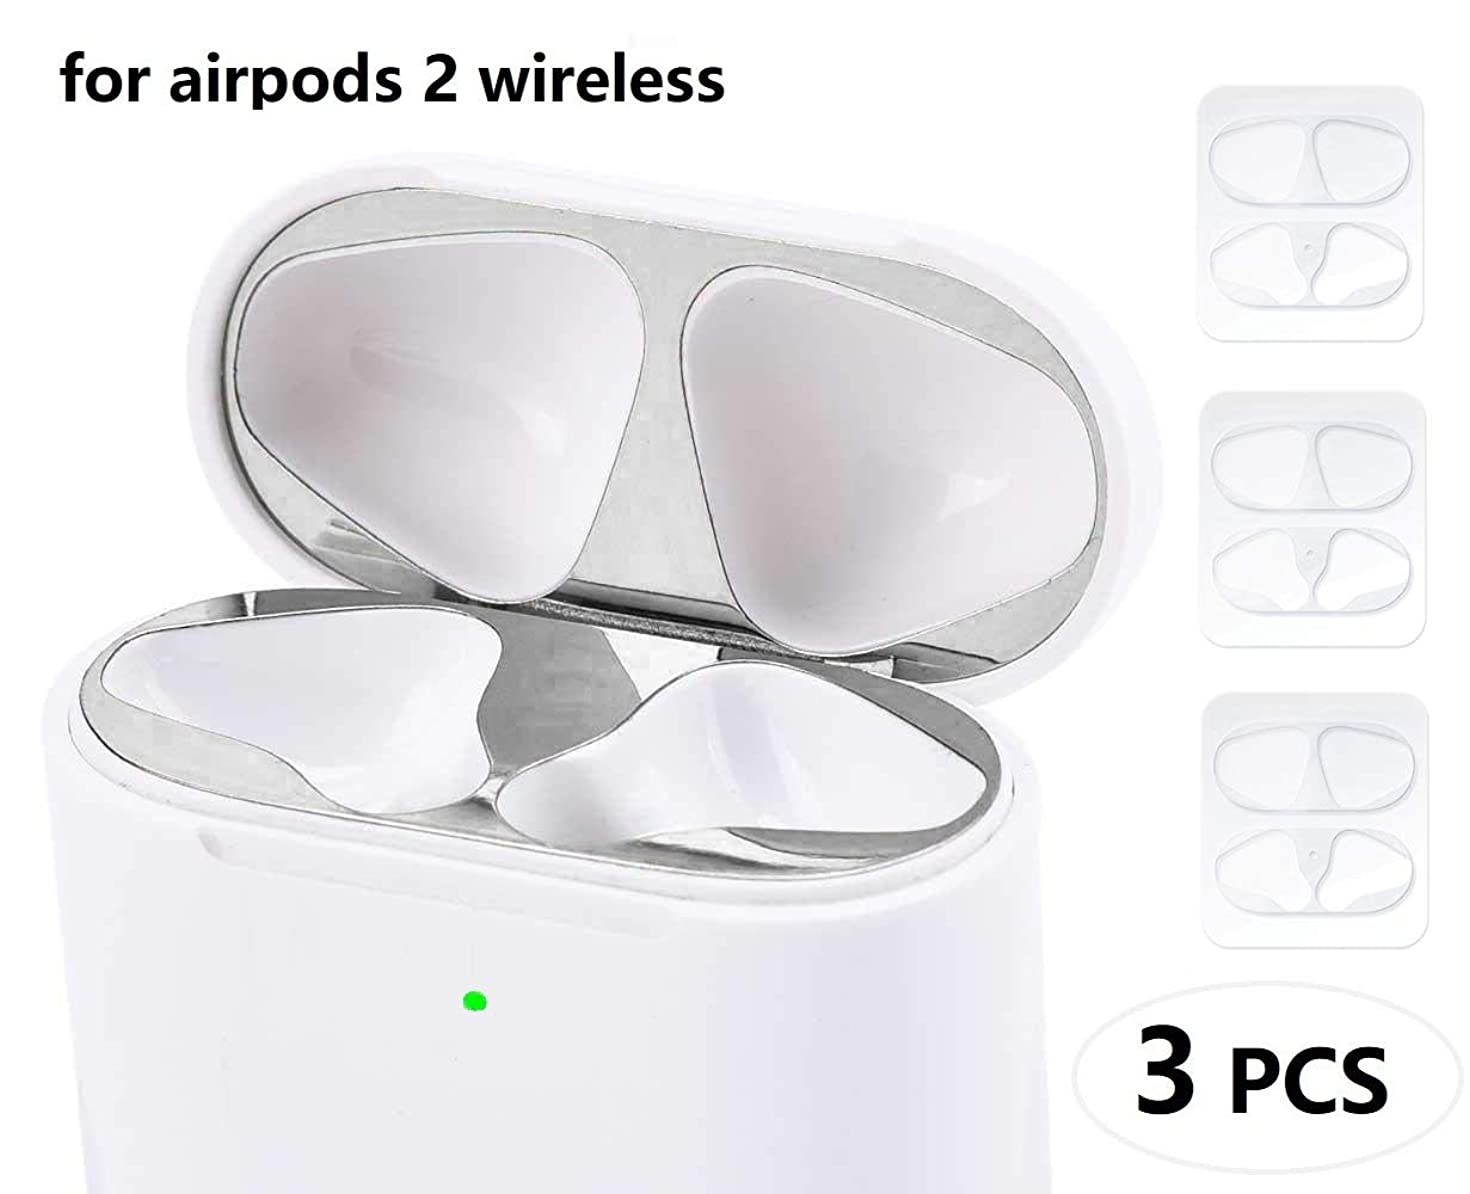 JNSA Dust Guard for AirPods with Wireless Charging Case (Latest Model) [Chromium Plating][Protect AirPods from Metal Dust][Upgrade Slim] AirPods Dust Proof Film Protector (3 Set - Bling Silver)